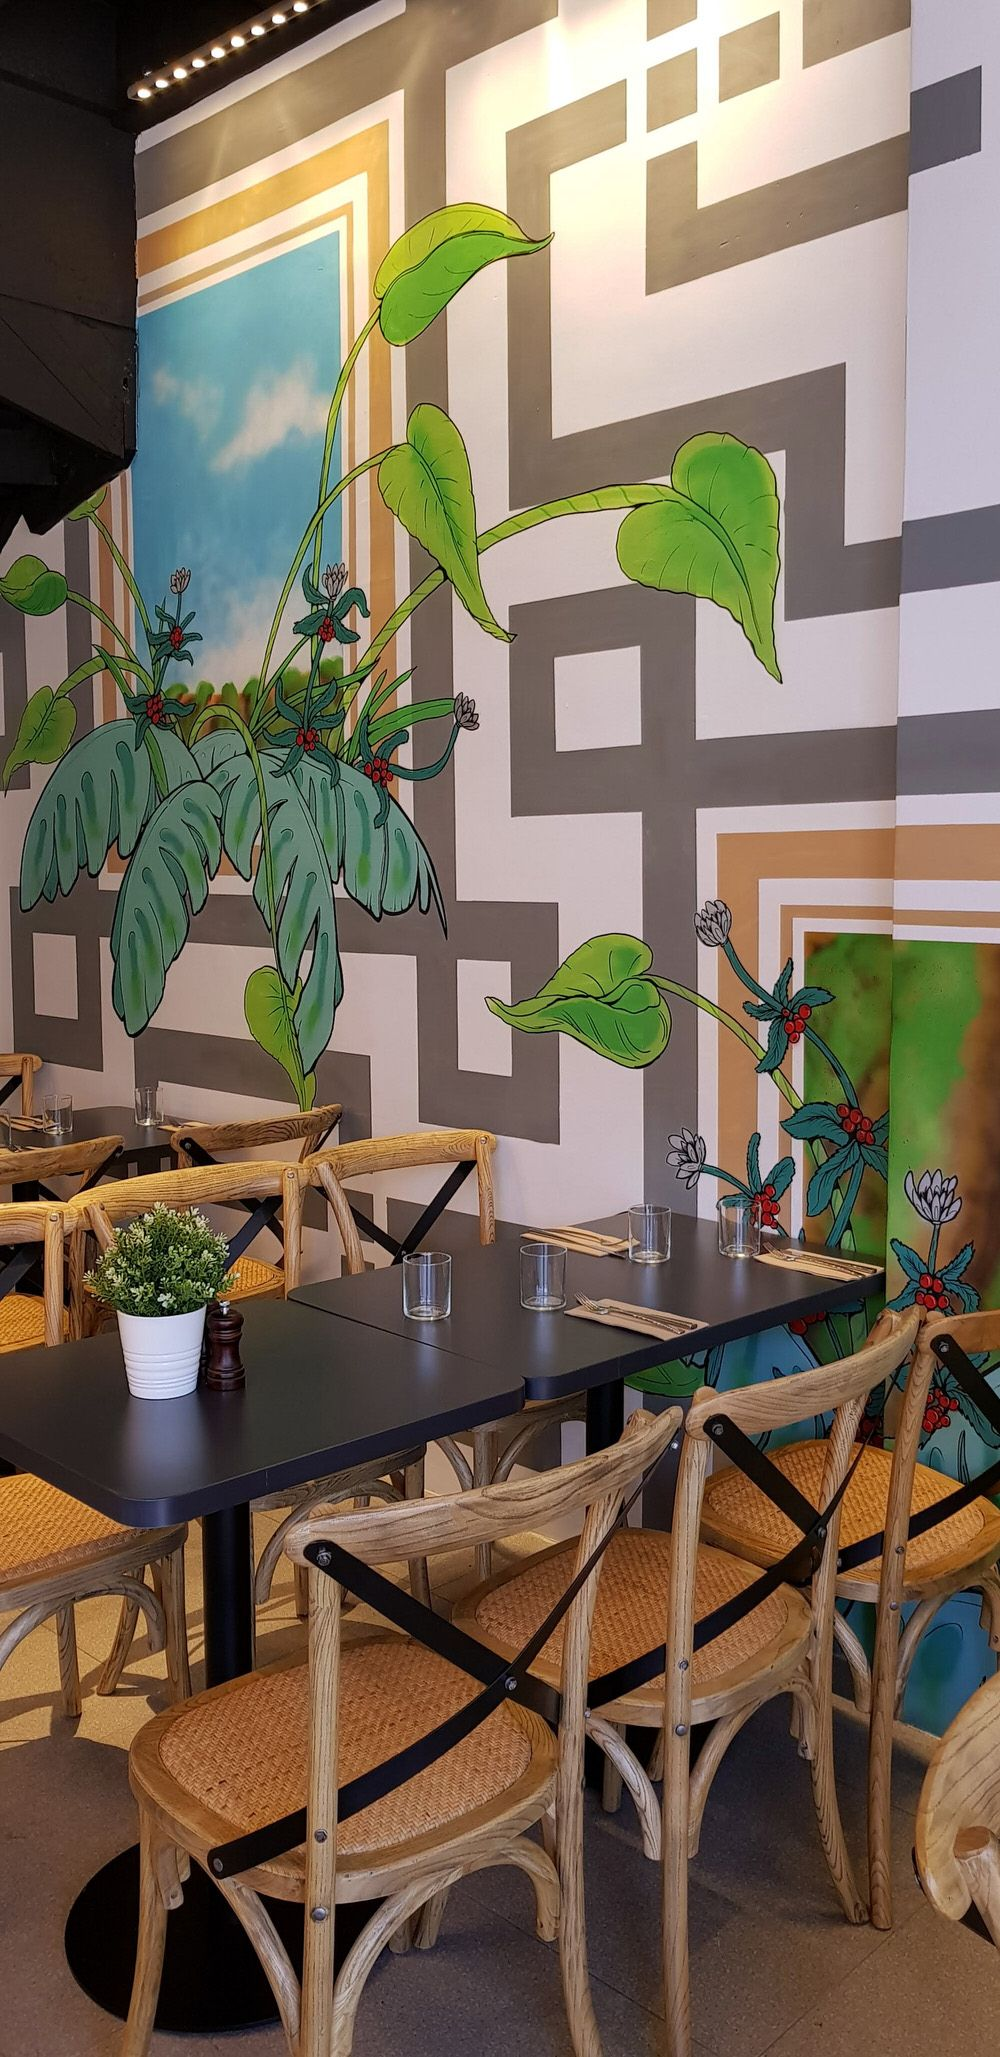 Finished interior plant cafe mural wall graphics design